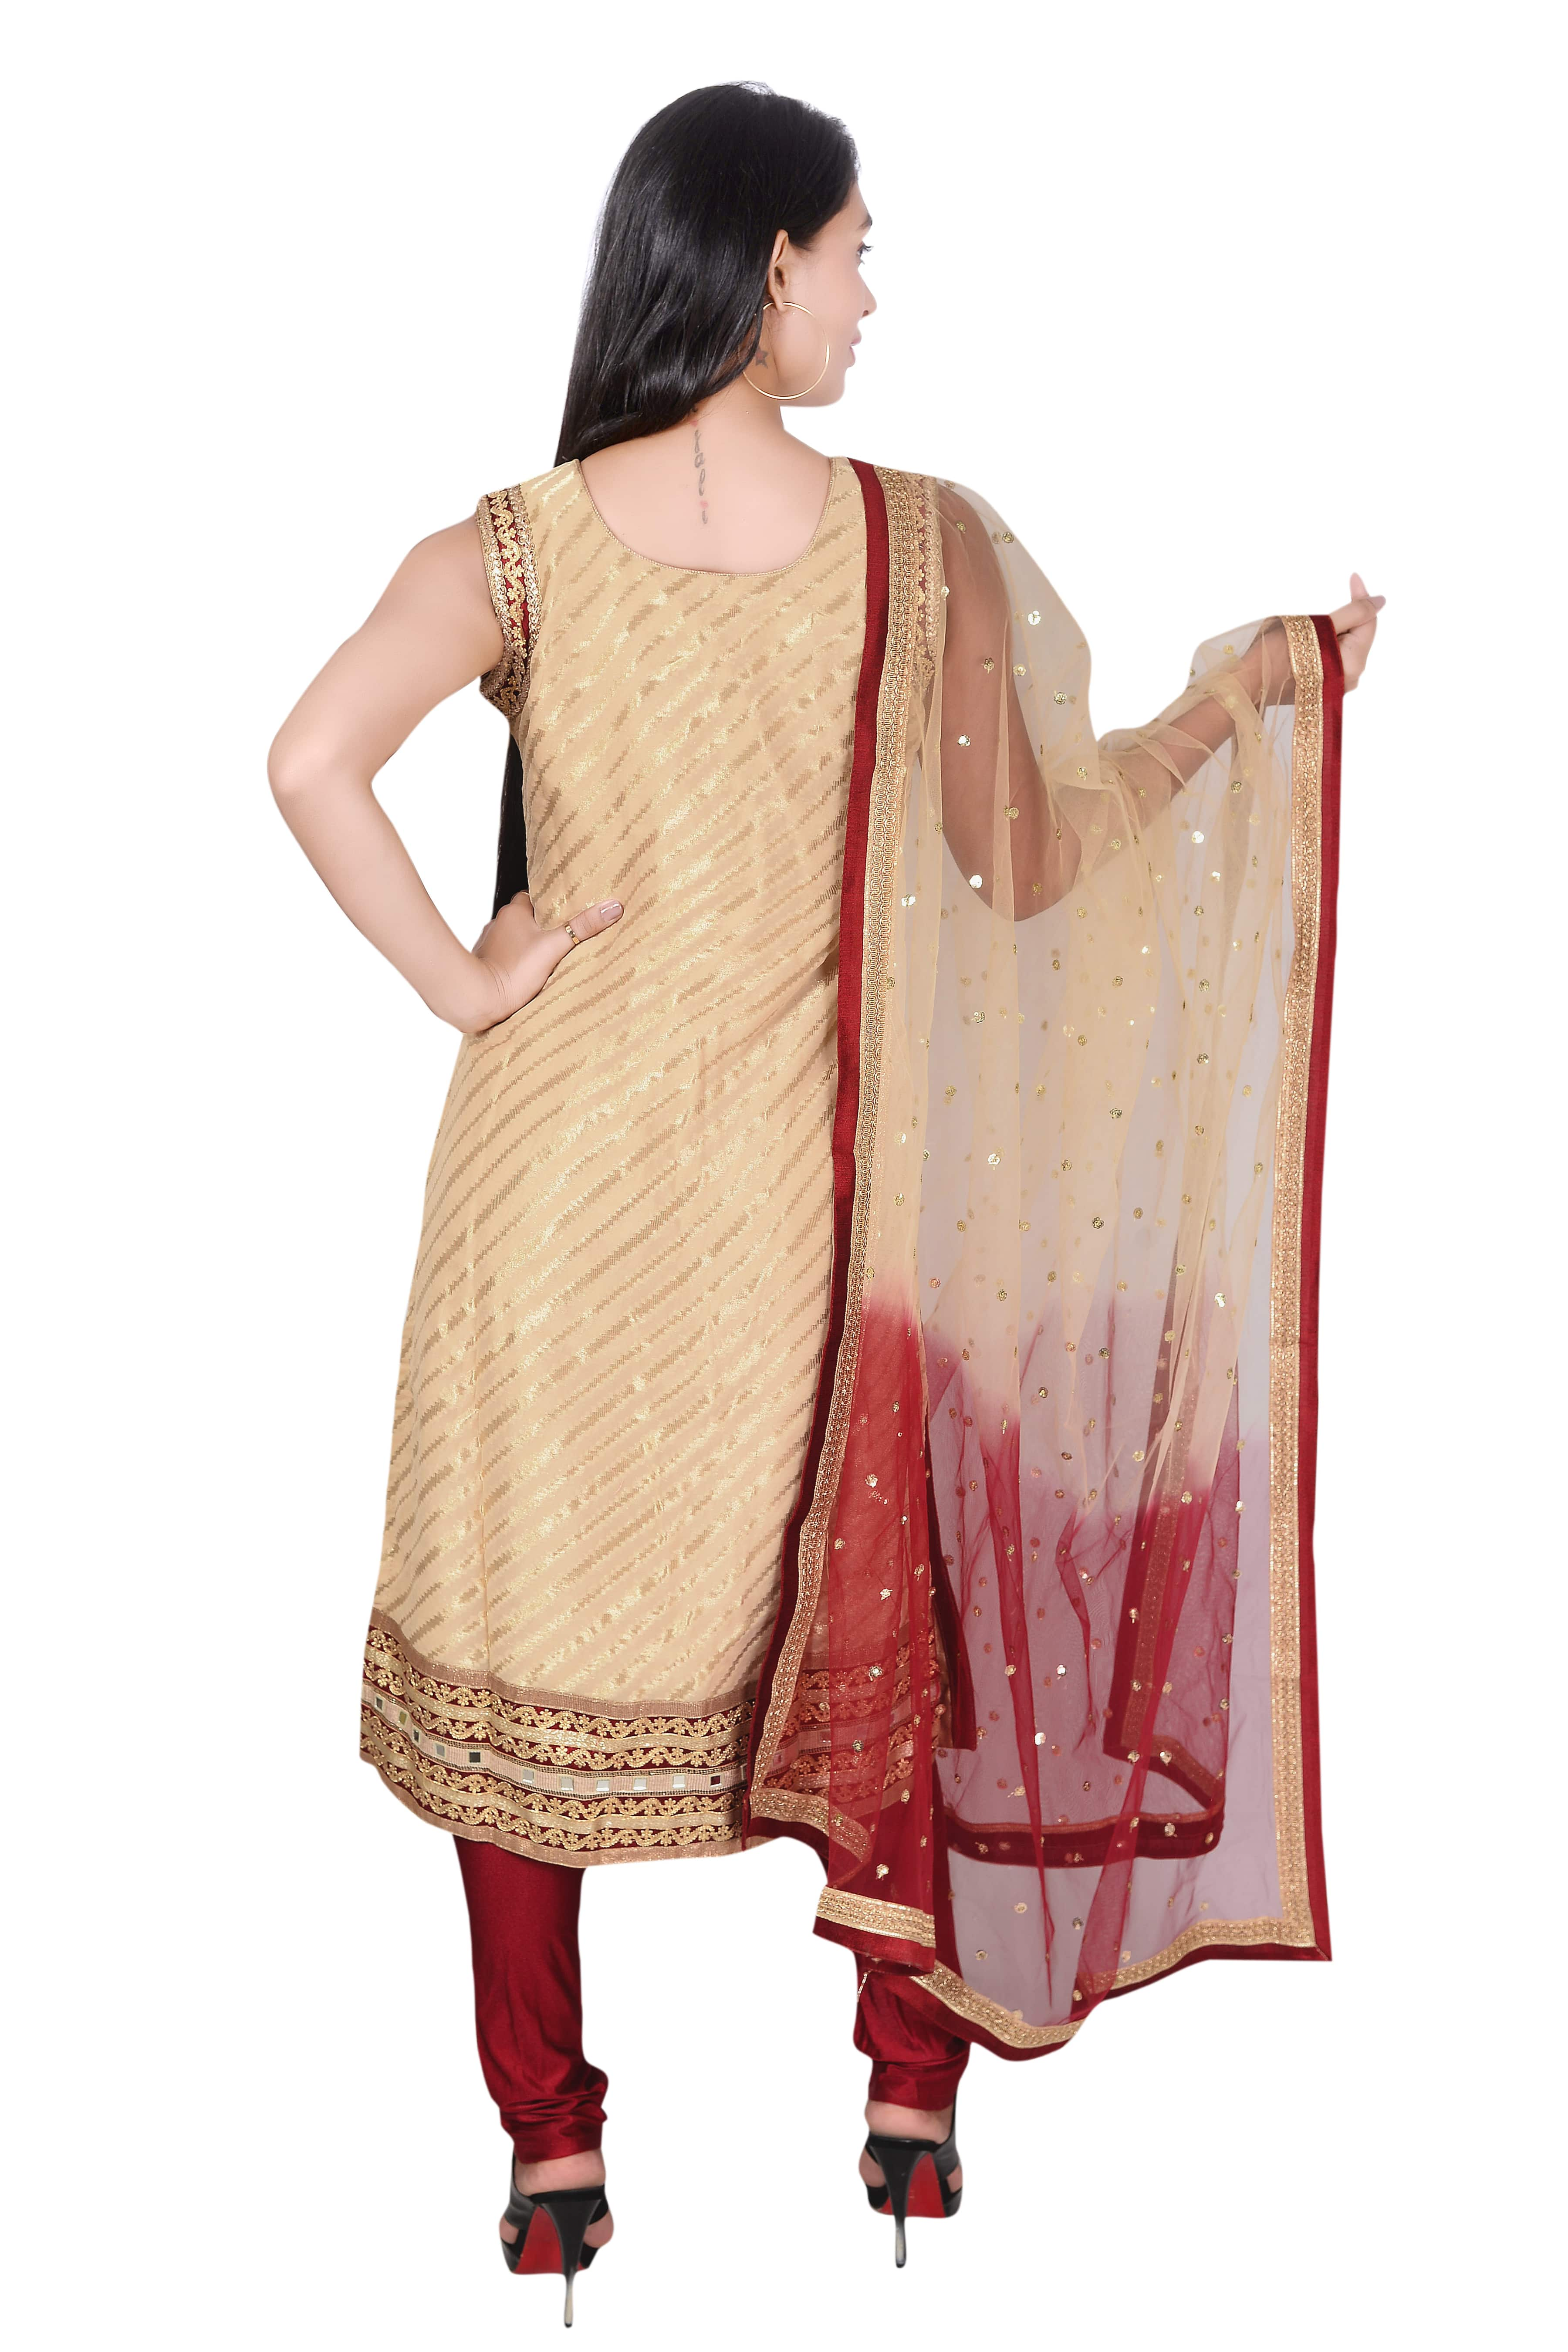 Ladies Punjabi Suits In Ujjain